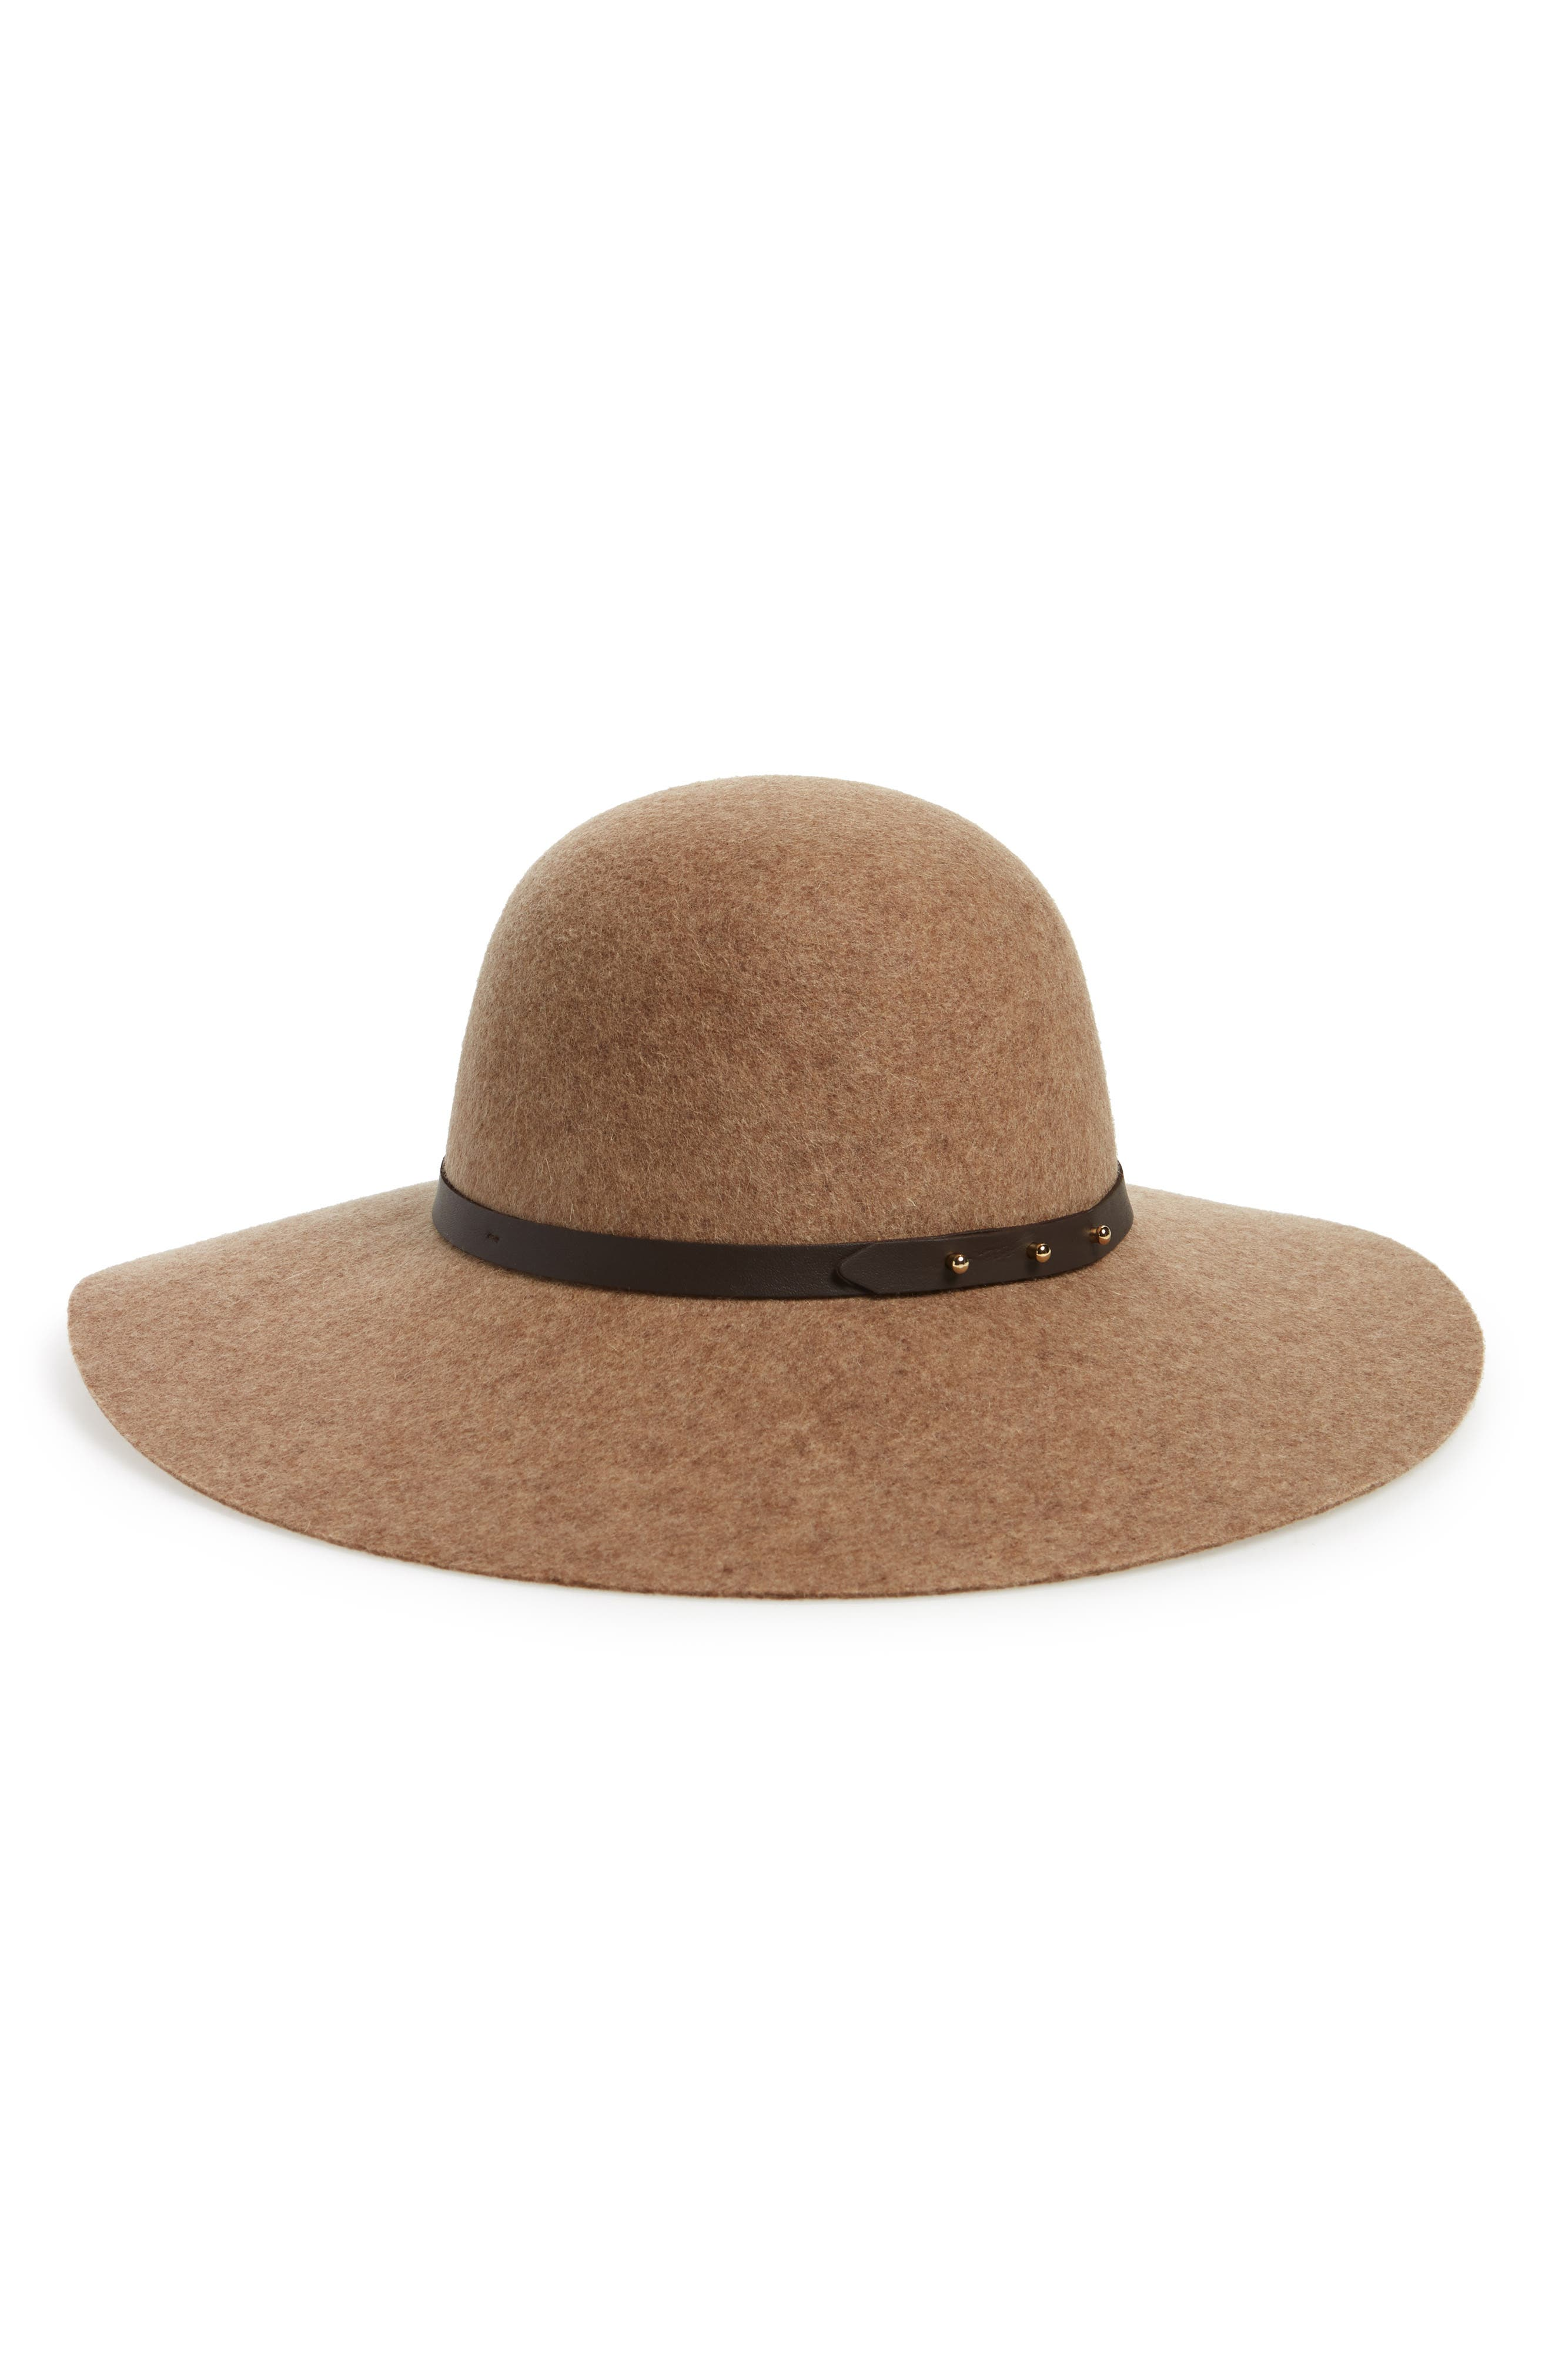 HALOGEN<SUP>®</SUP>, Refined Wide Brim Wool Floppy Hat, Main thumbnail 1, color, 235